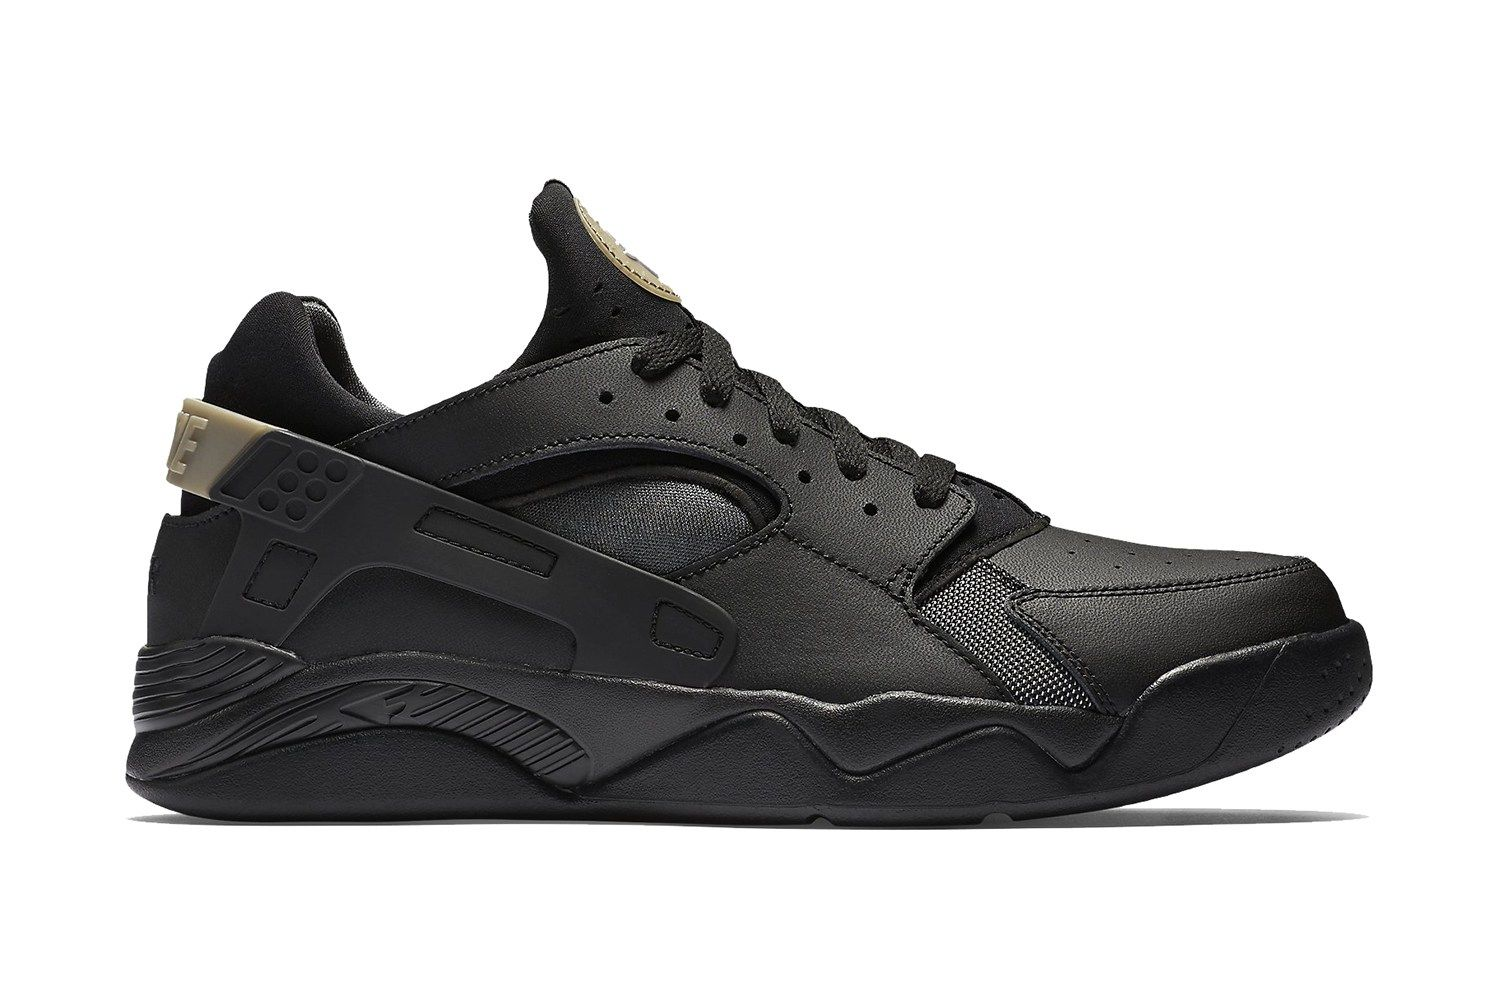 nouvelles chaussures de tennis Nike - Nike's Low-Top Air Flight Huarache Returns in a New Black Colorway ...